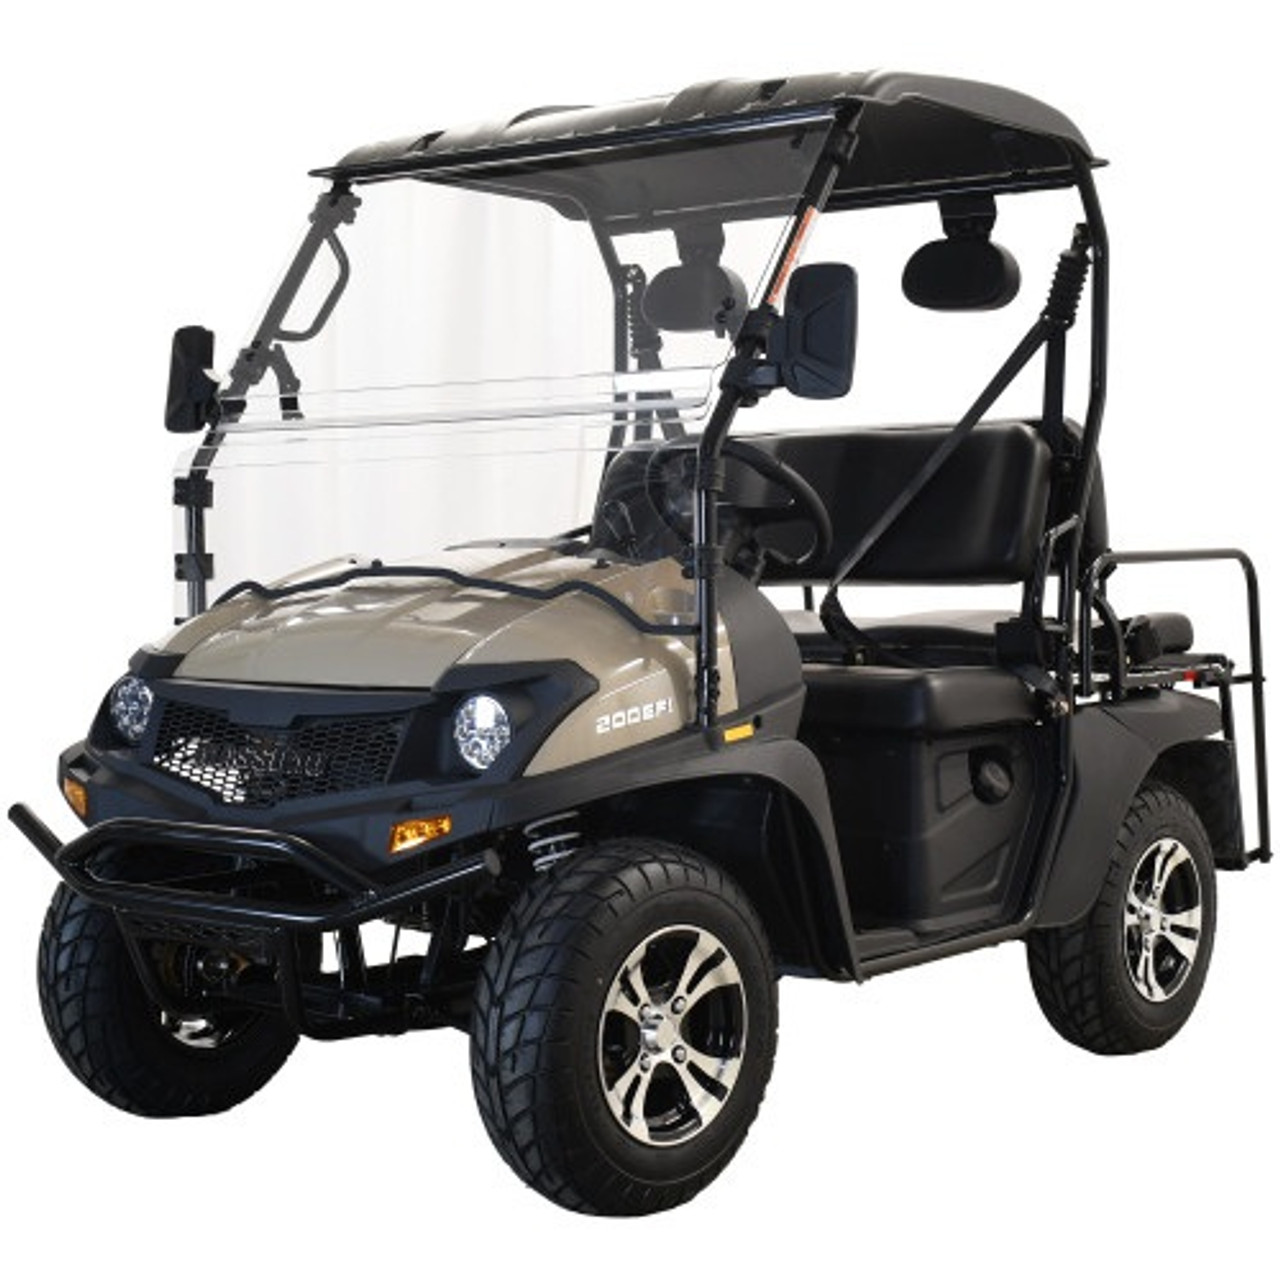 SAND - MASSIMO BUCK 200X UTV, 177cc Four-Stroke, Single Cylinder - Fully Assembled and Tested